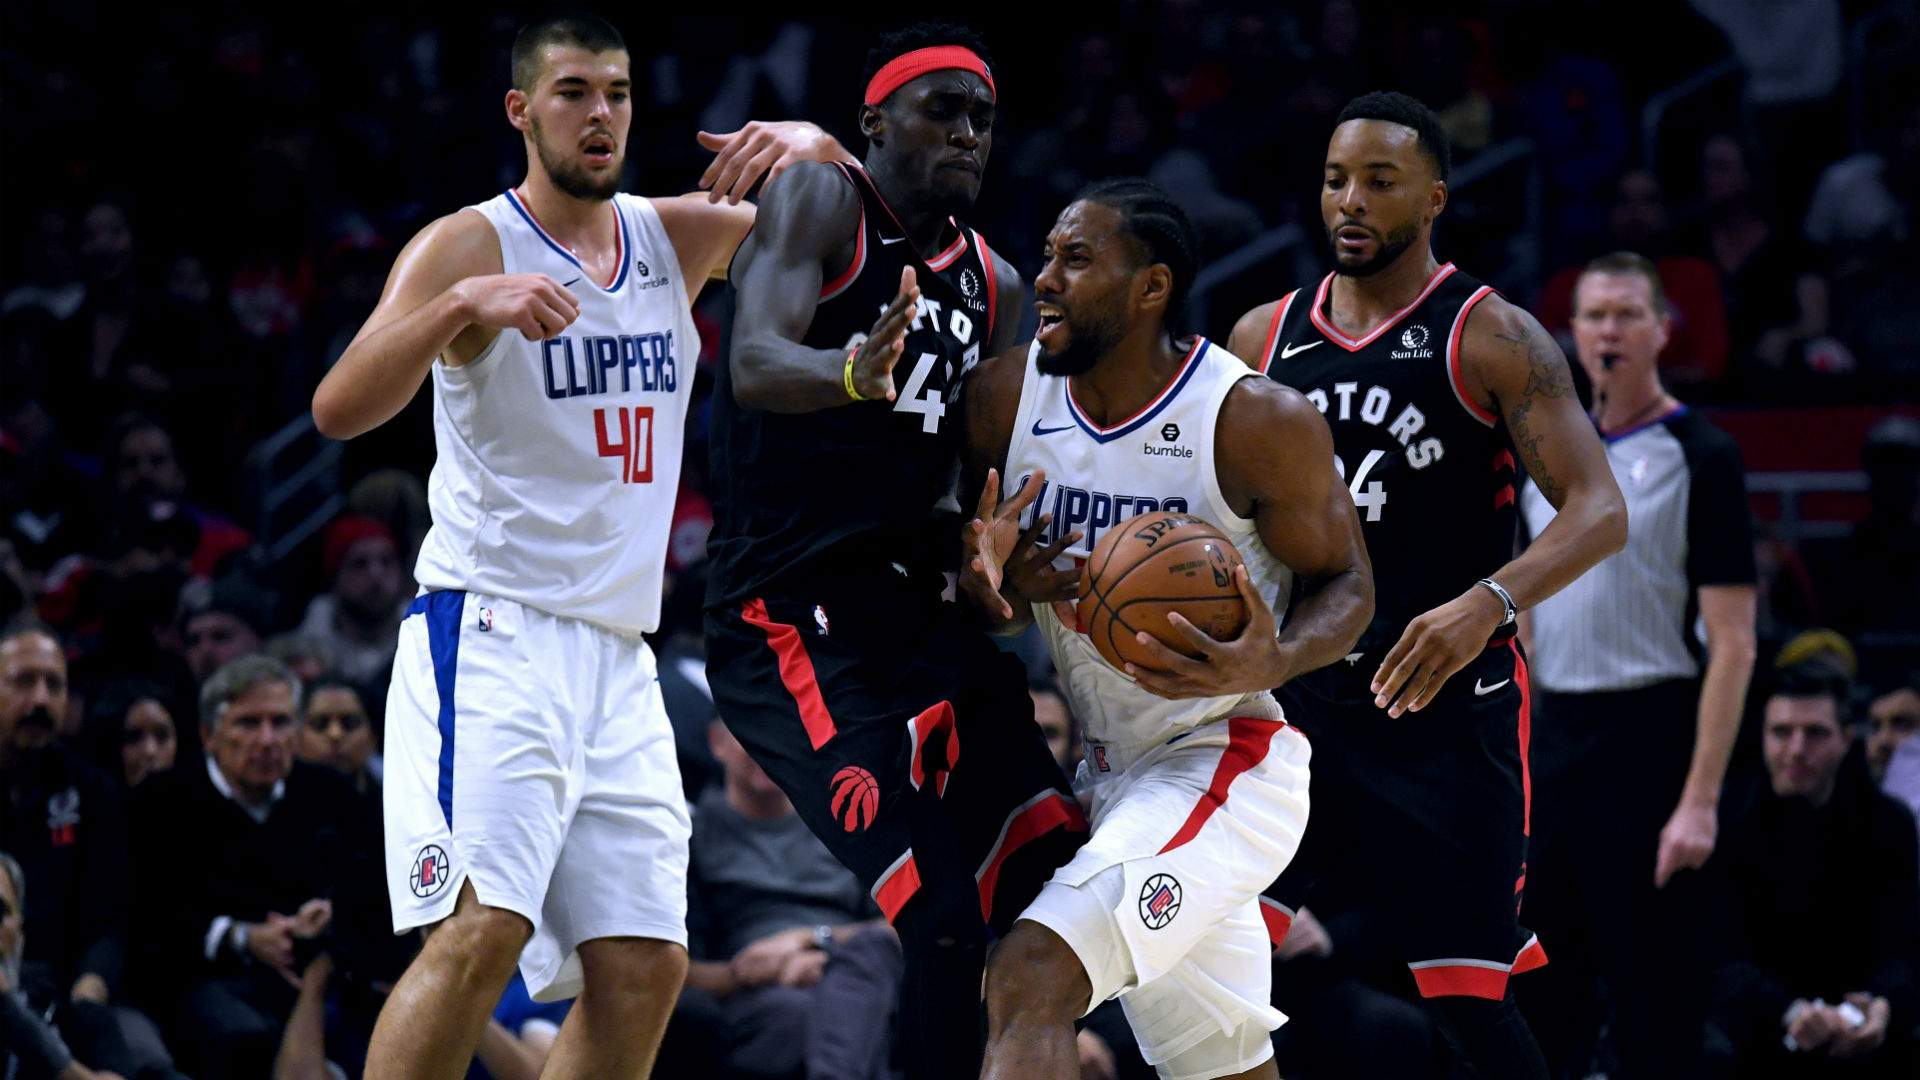 Kawhi Leonard just missed out on a triple-double against the Toronto Raptors in his first meeting with his former team.